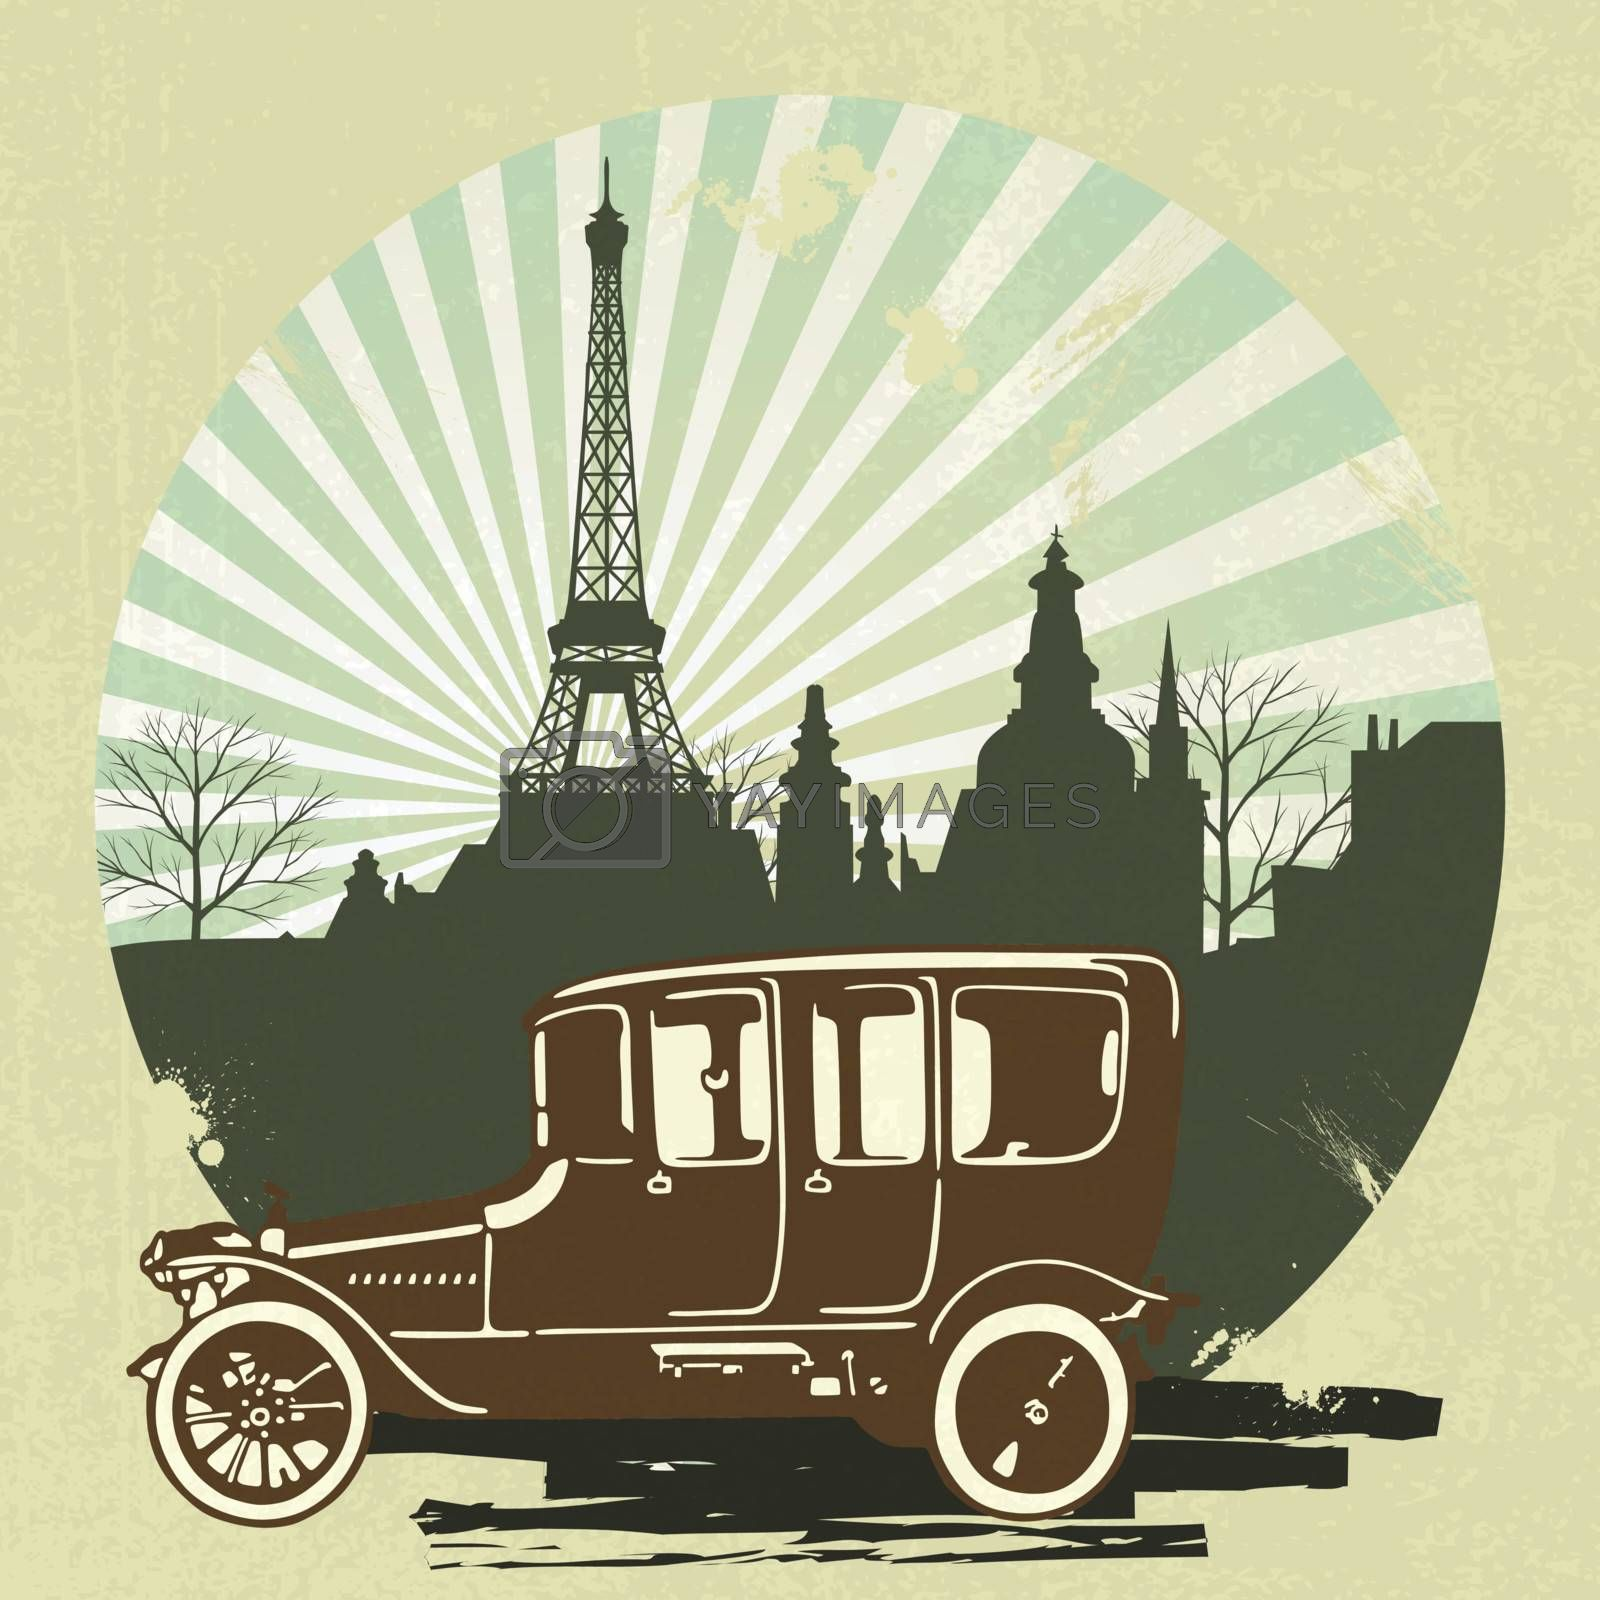 classic retro car with vintage Eiffel Tower background